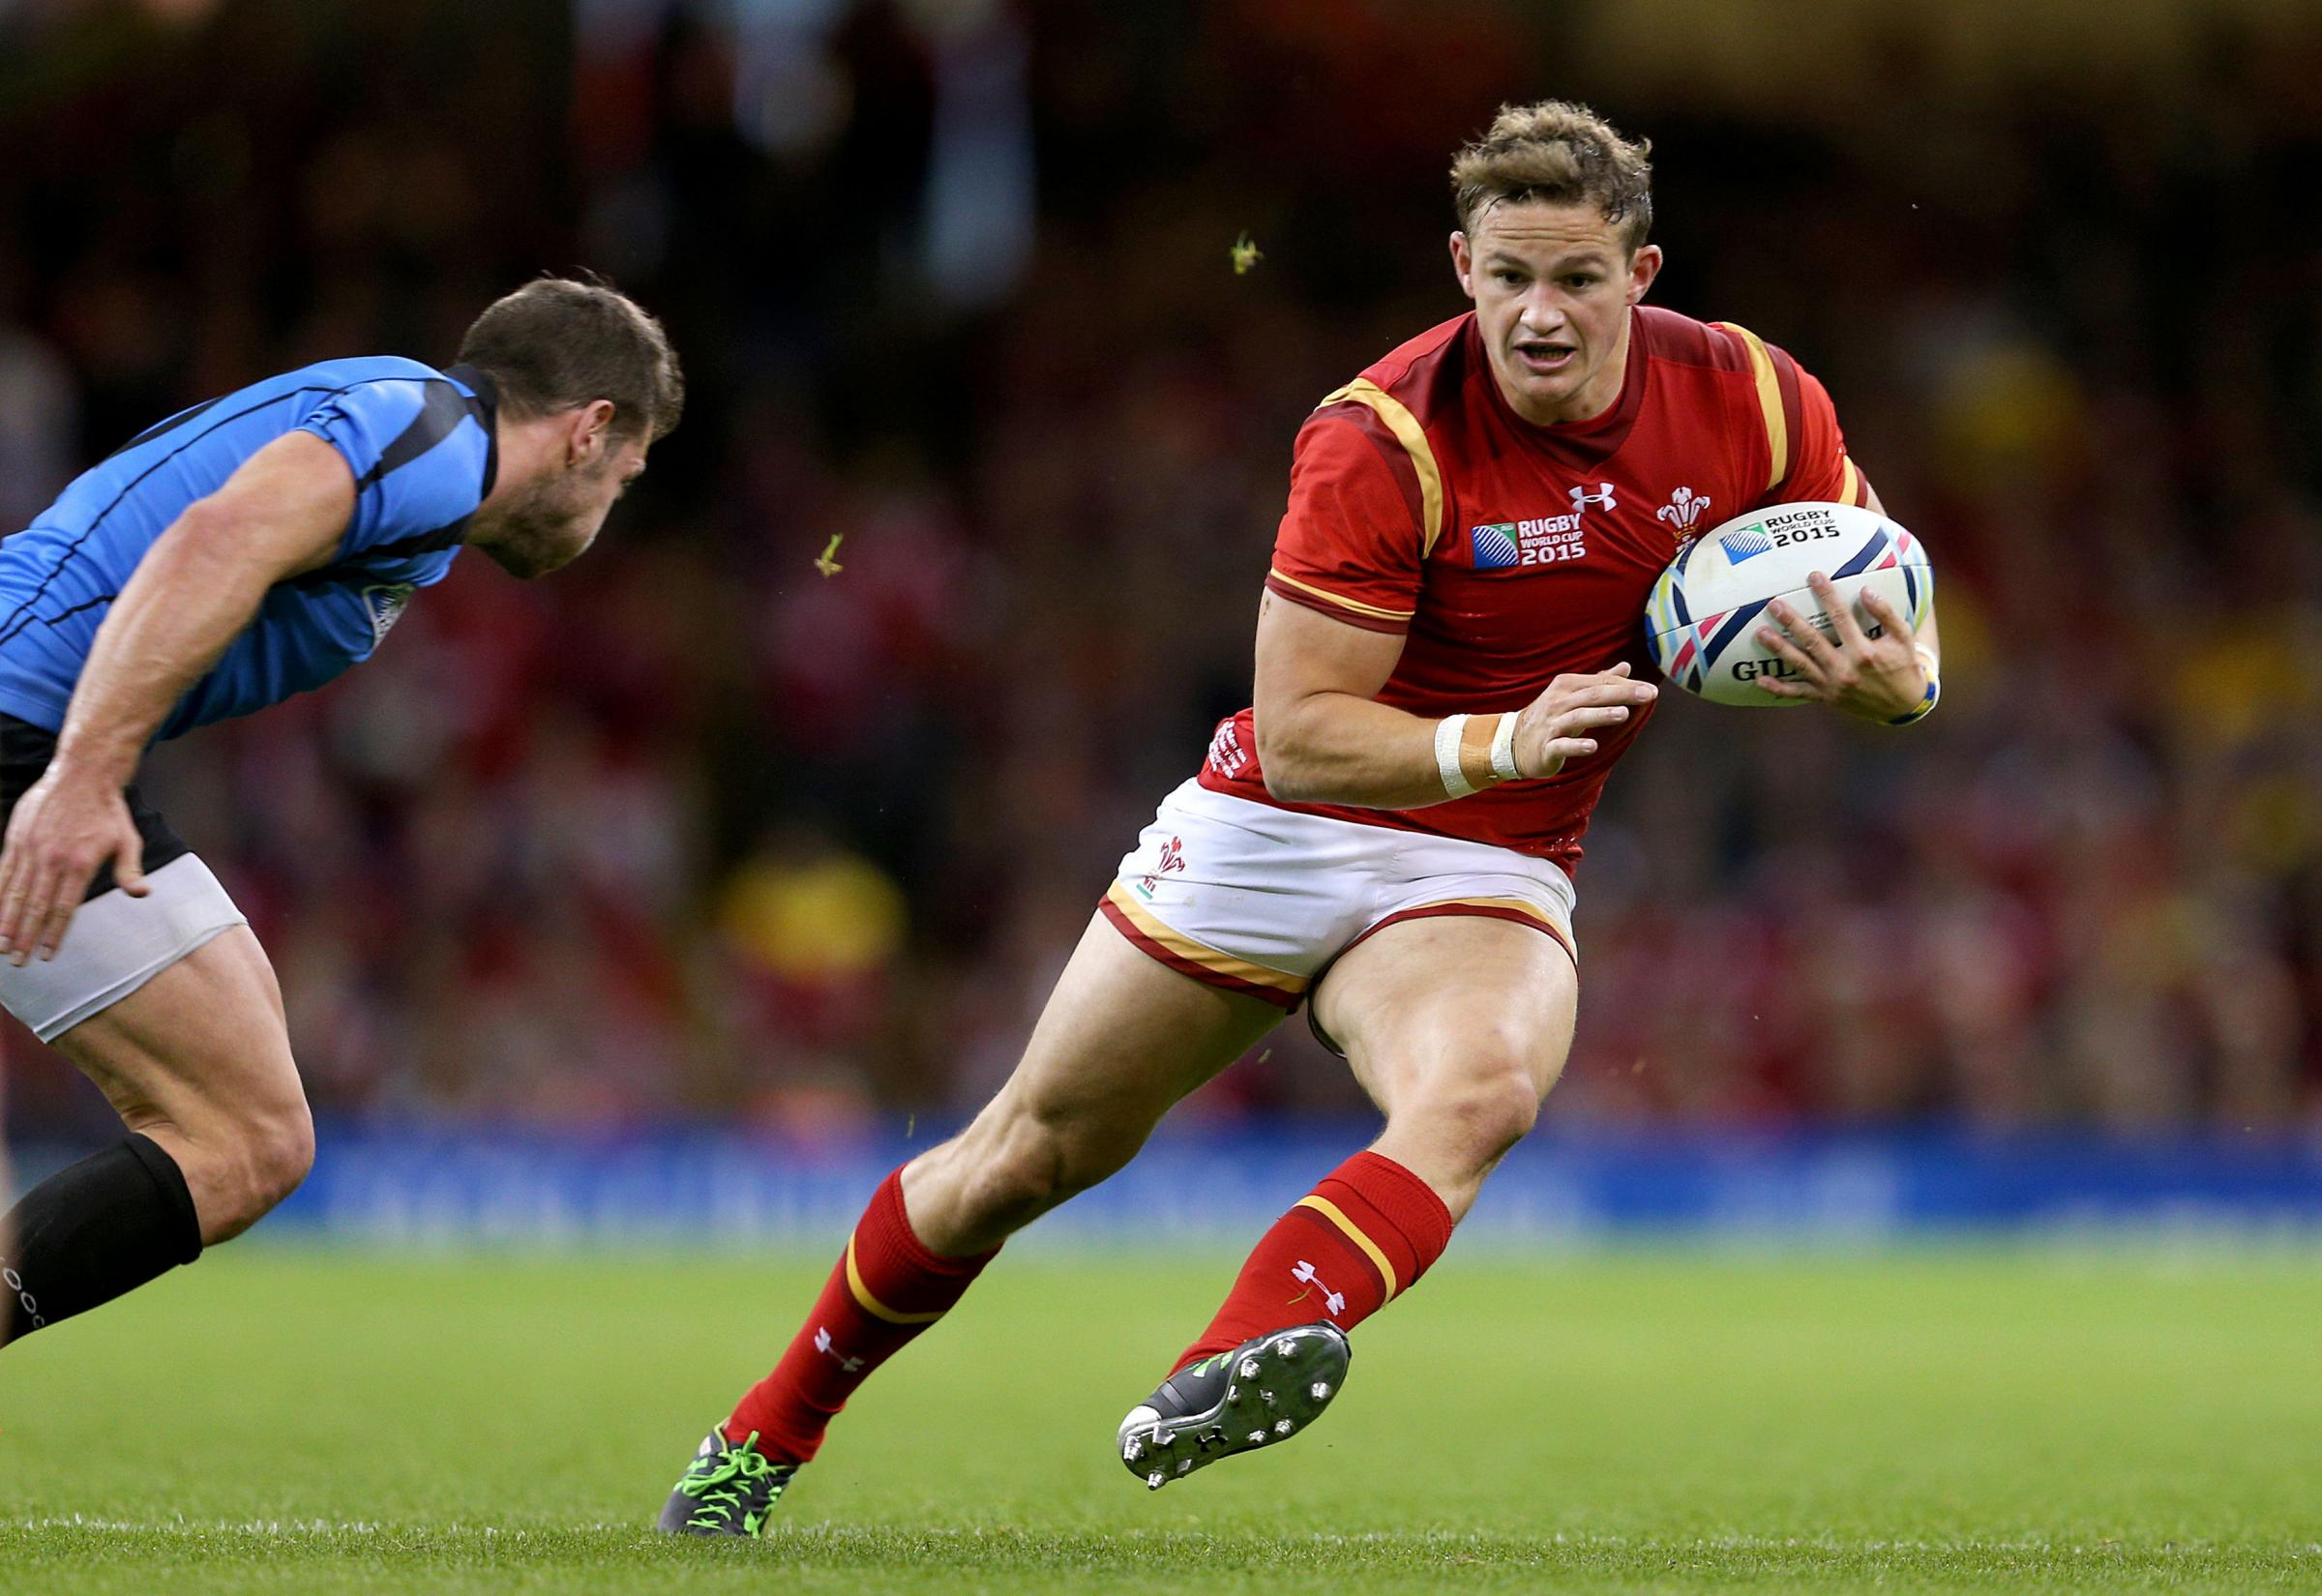 UNDER PRESSURE: Dragons ace Hallam Amos played for Wales at the 2015 World Cup and is chasing a spot at Japan next year